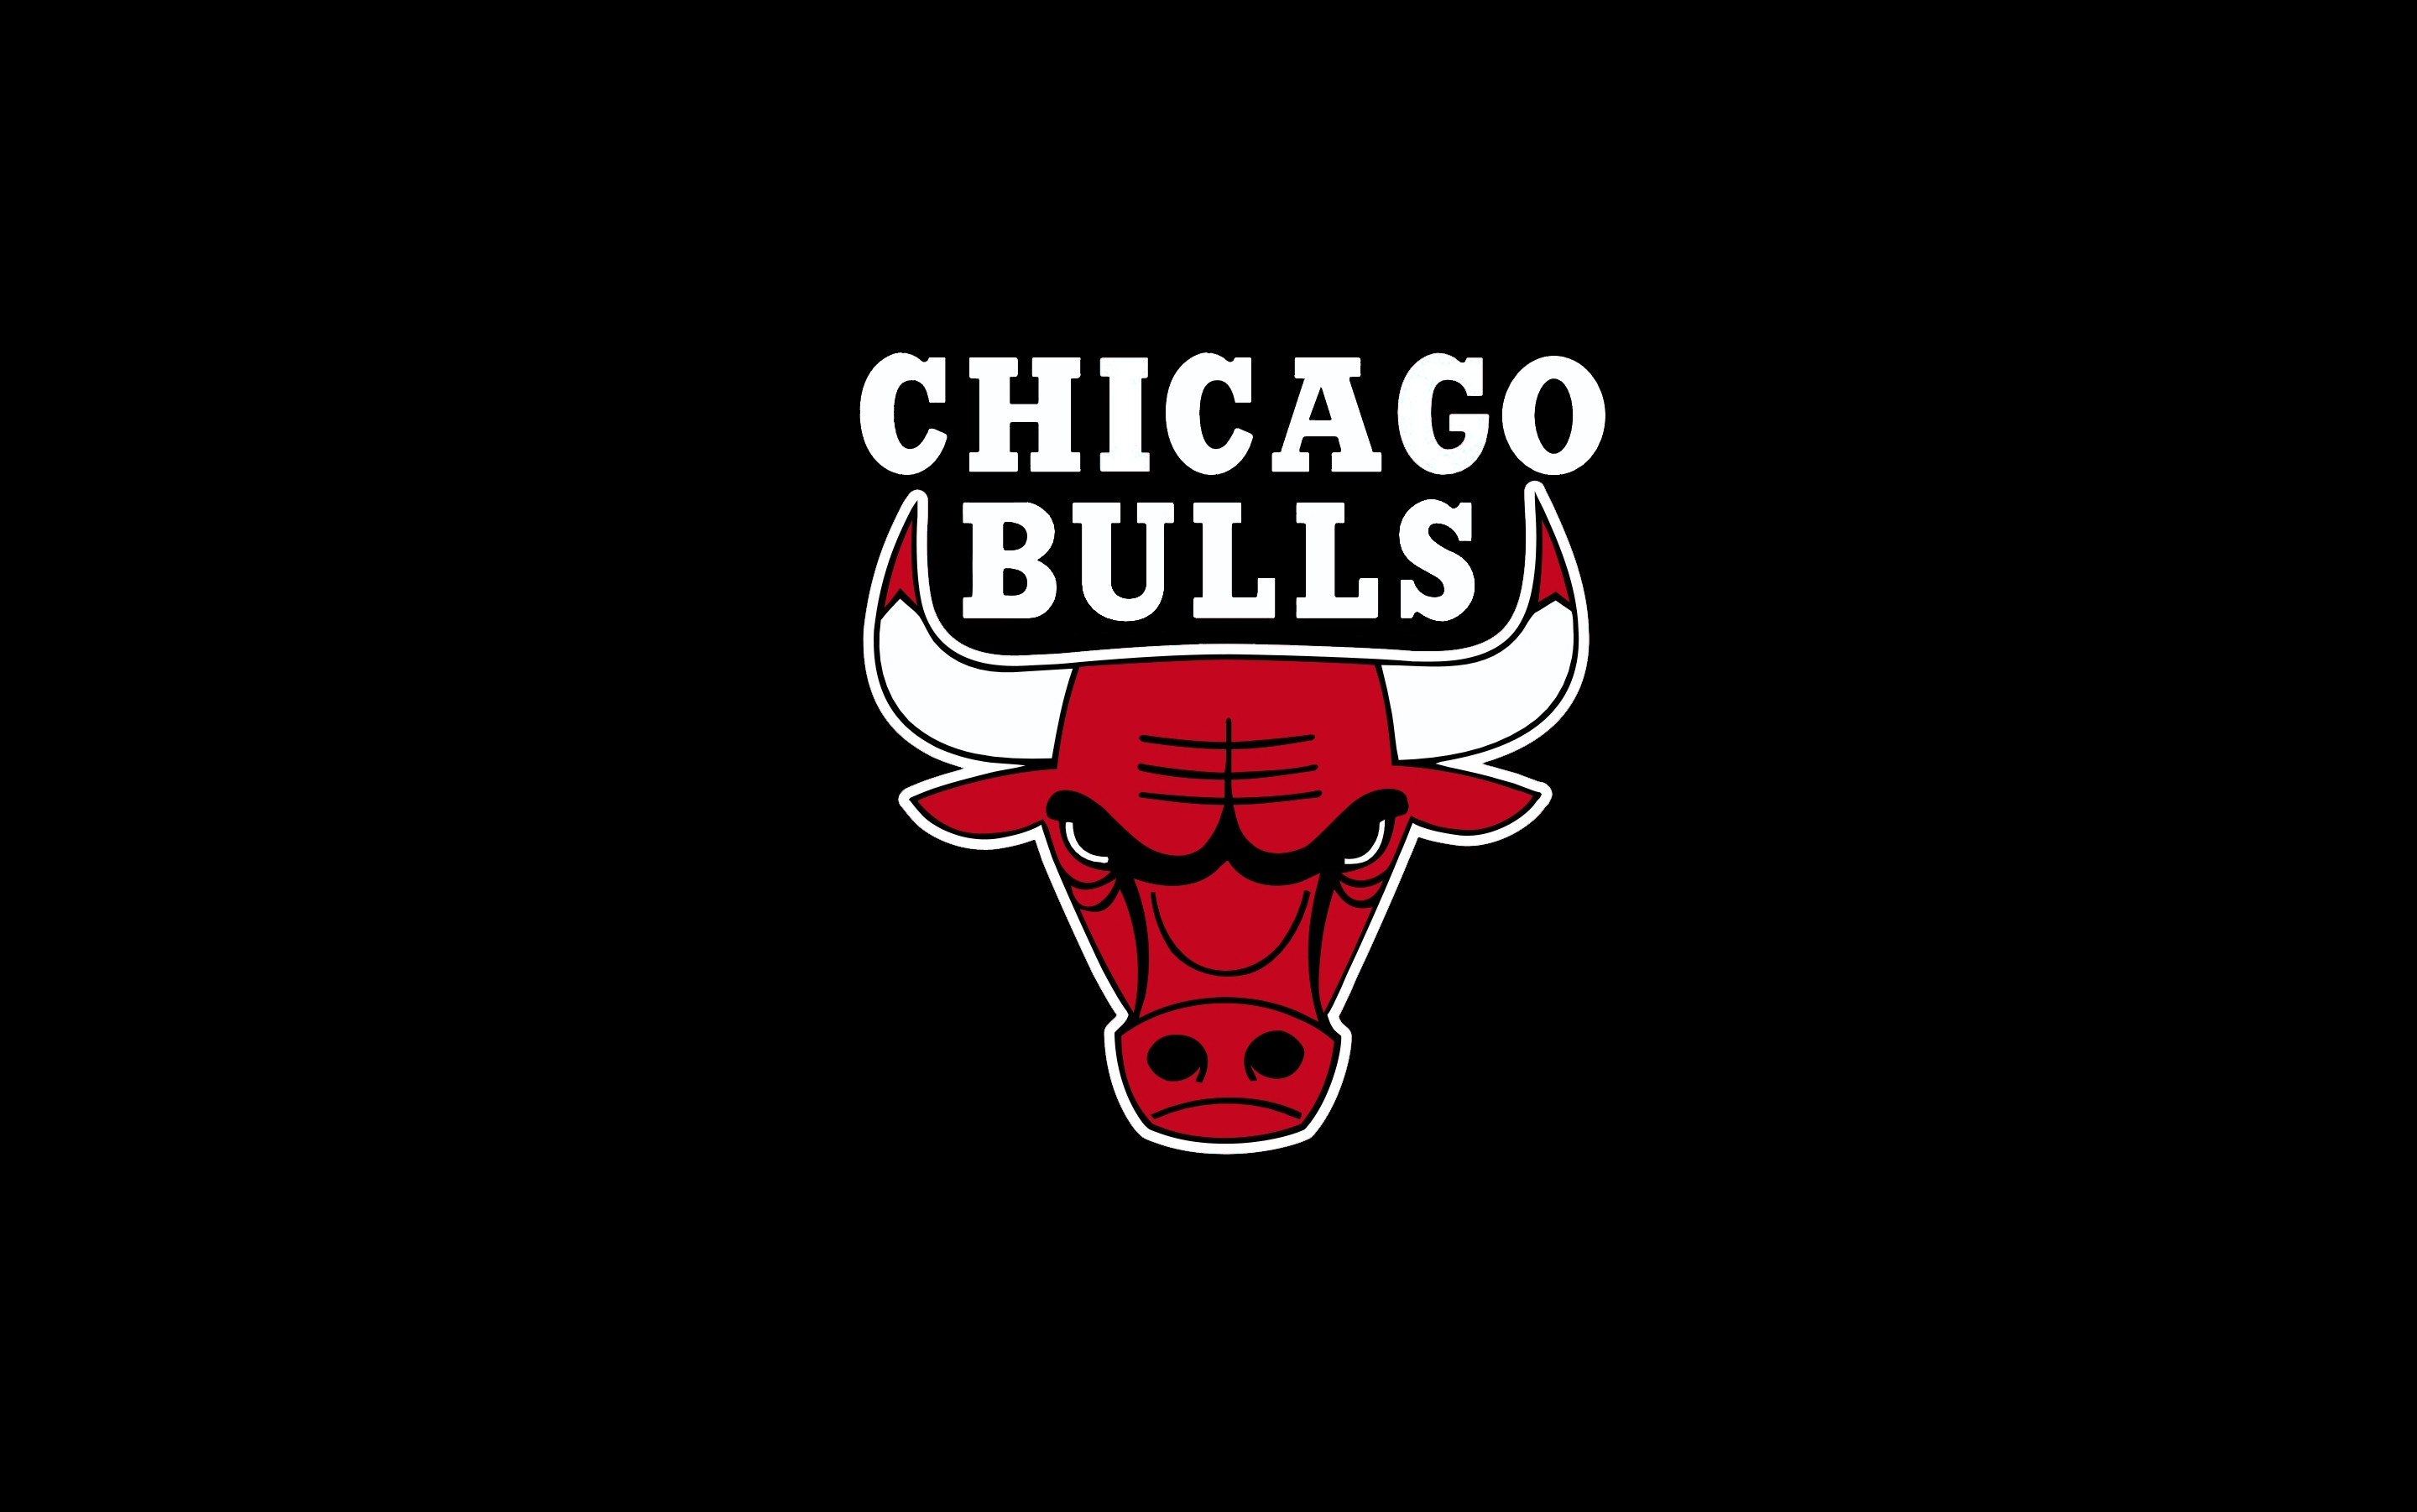 Chicago Bulls Wallpapers   HD Wallpapers Early